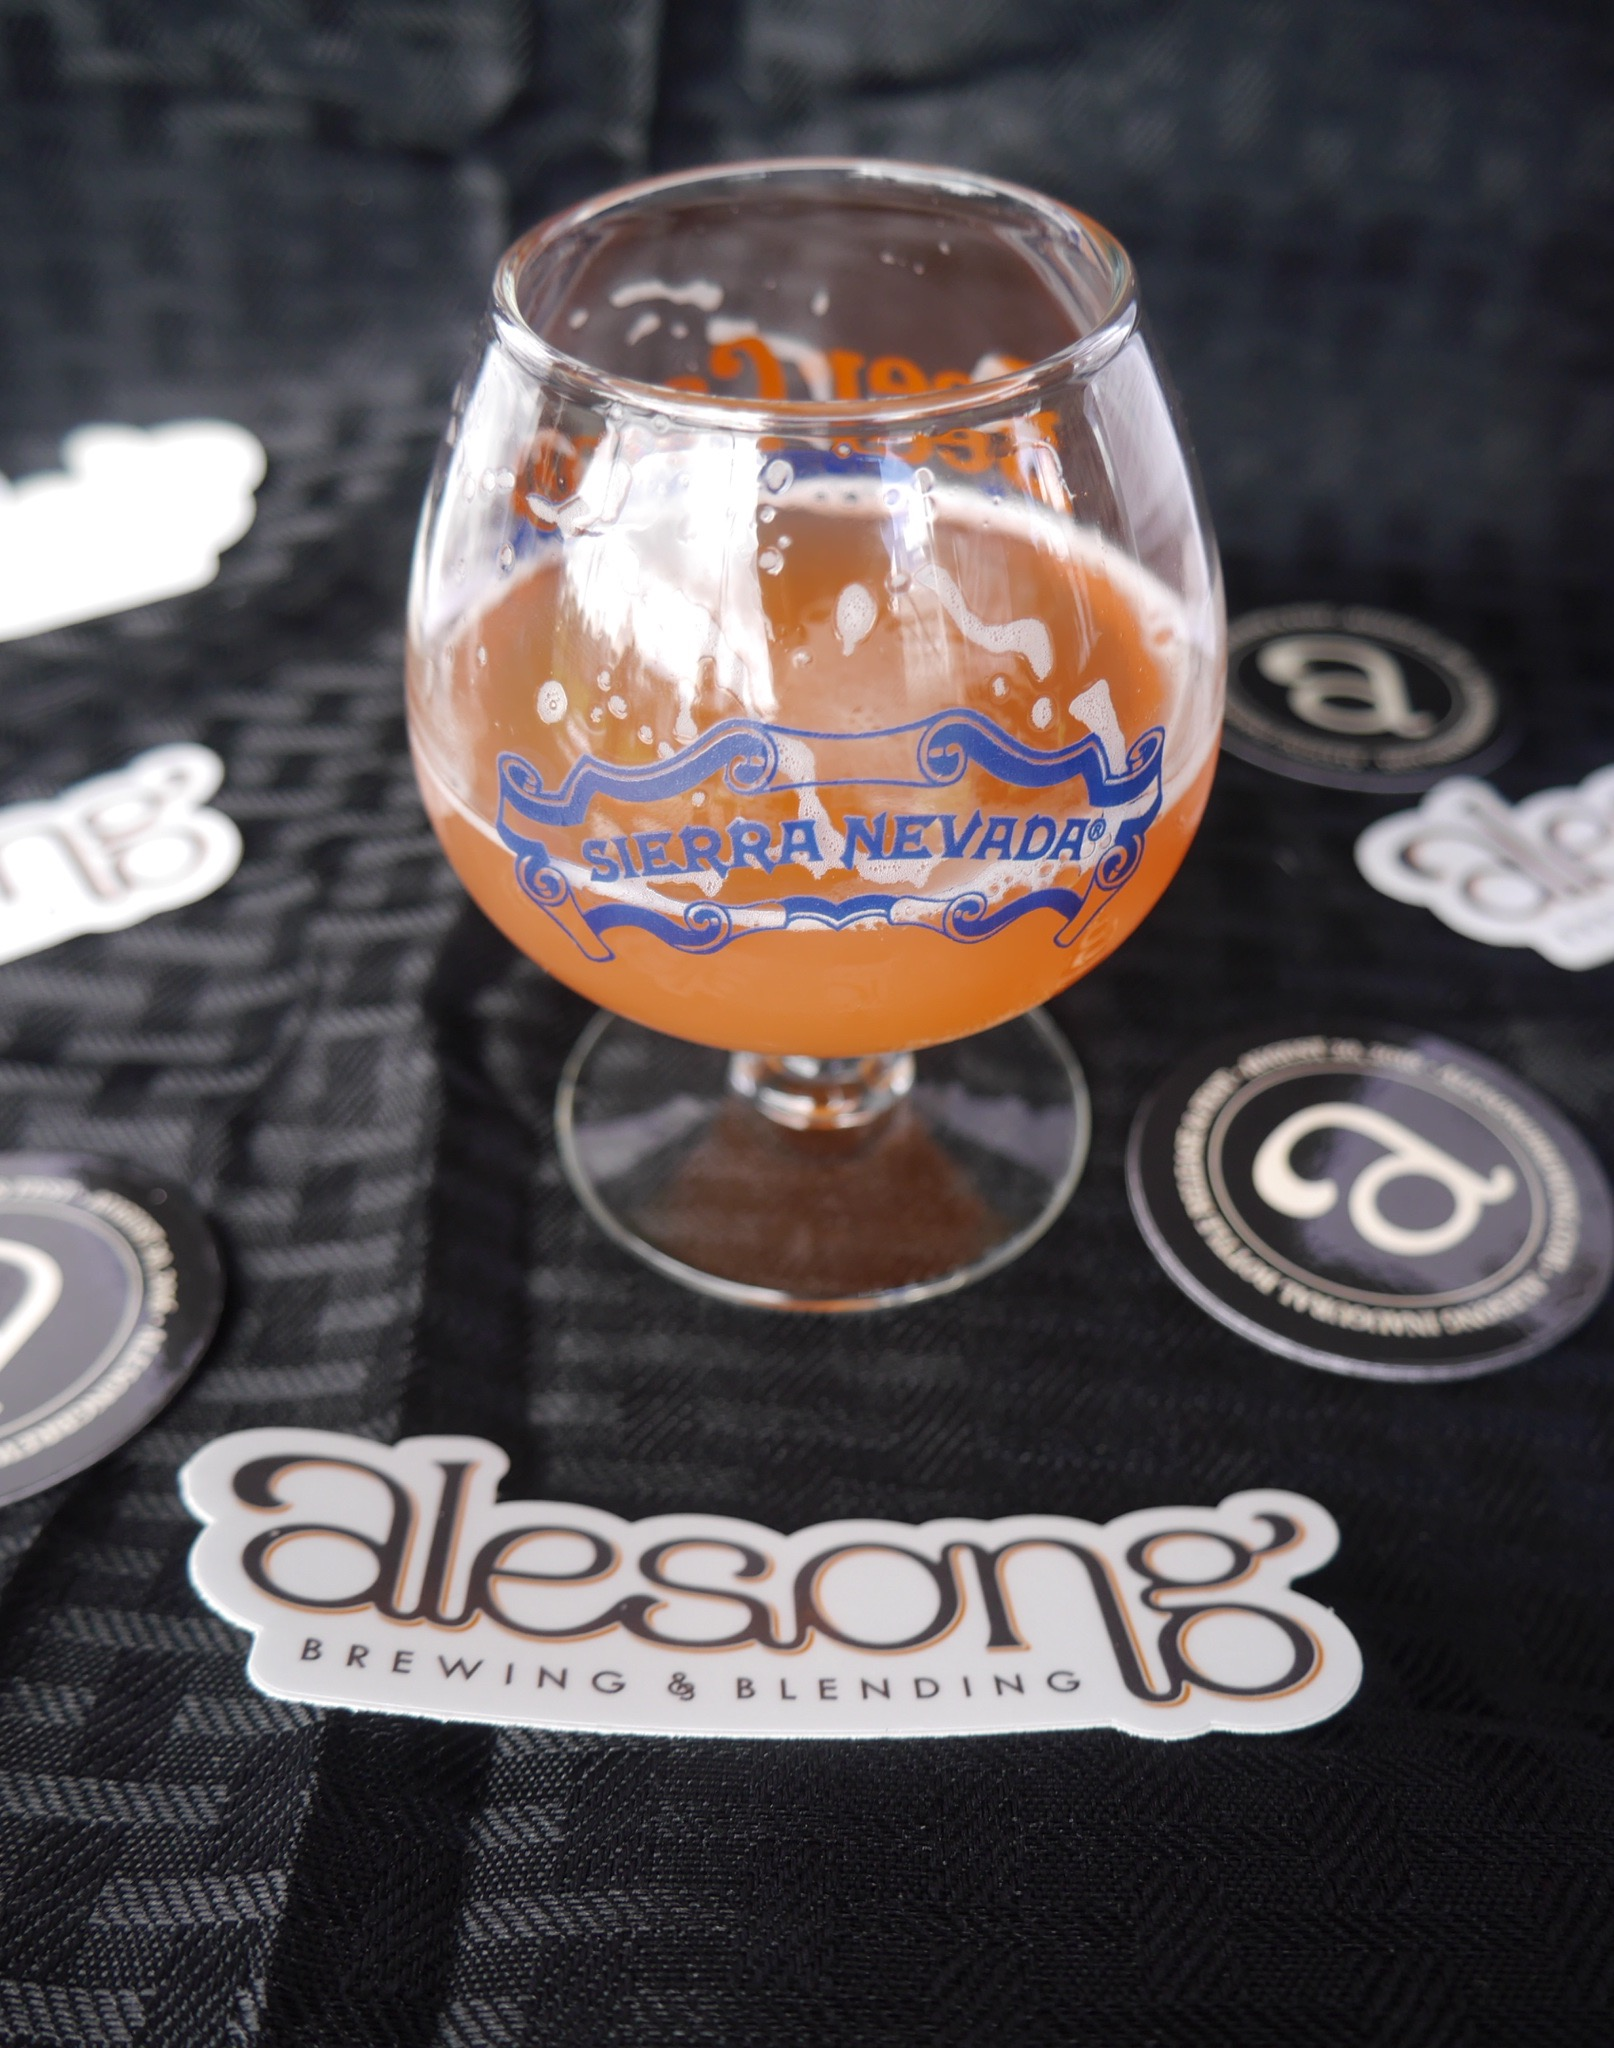 Alesong Strawberry Gose at Sierra Nevada Beer Camp Across America Festival in Seattle. (photo by Cat Stelzer)